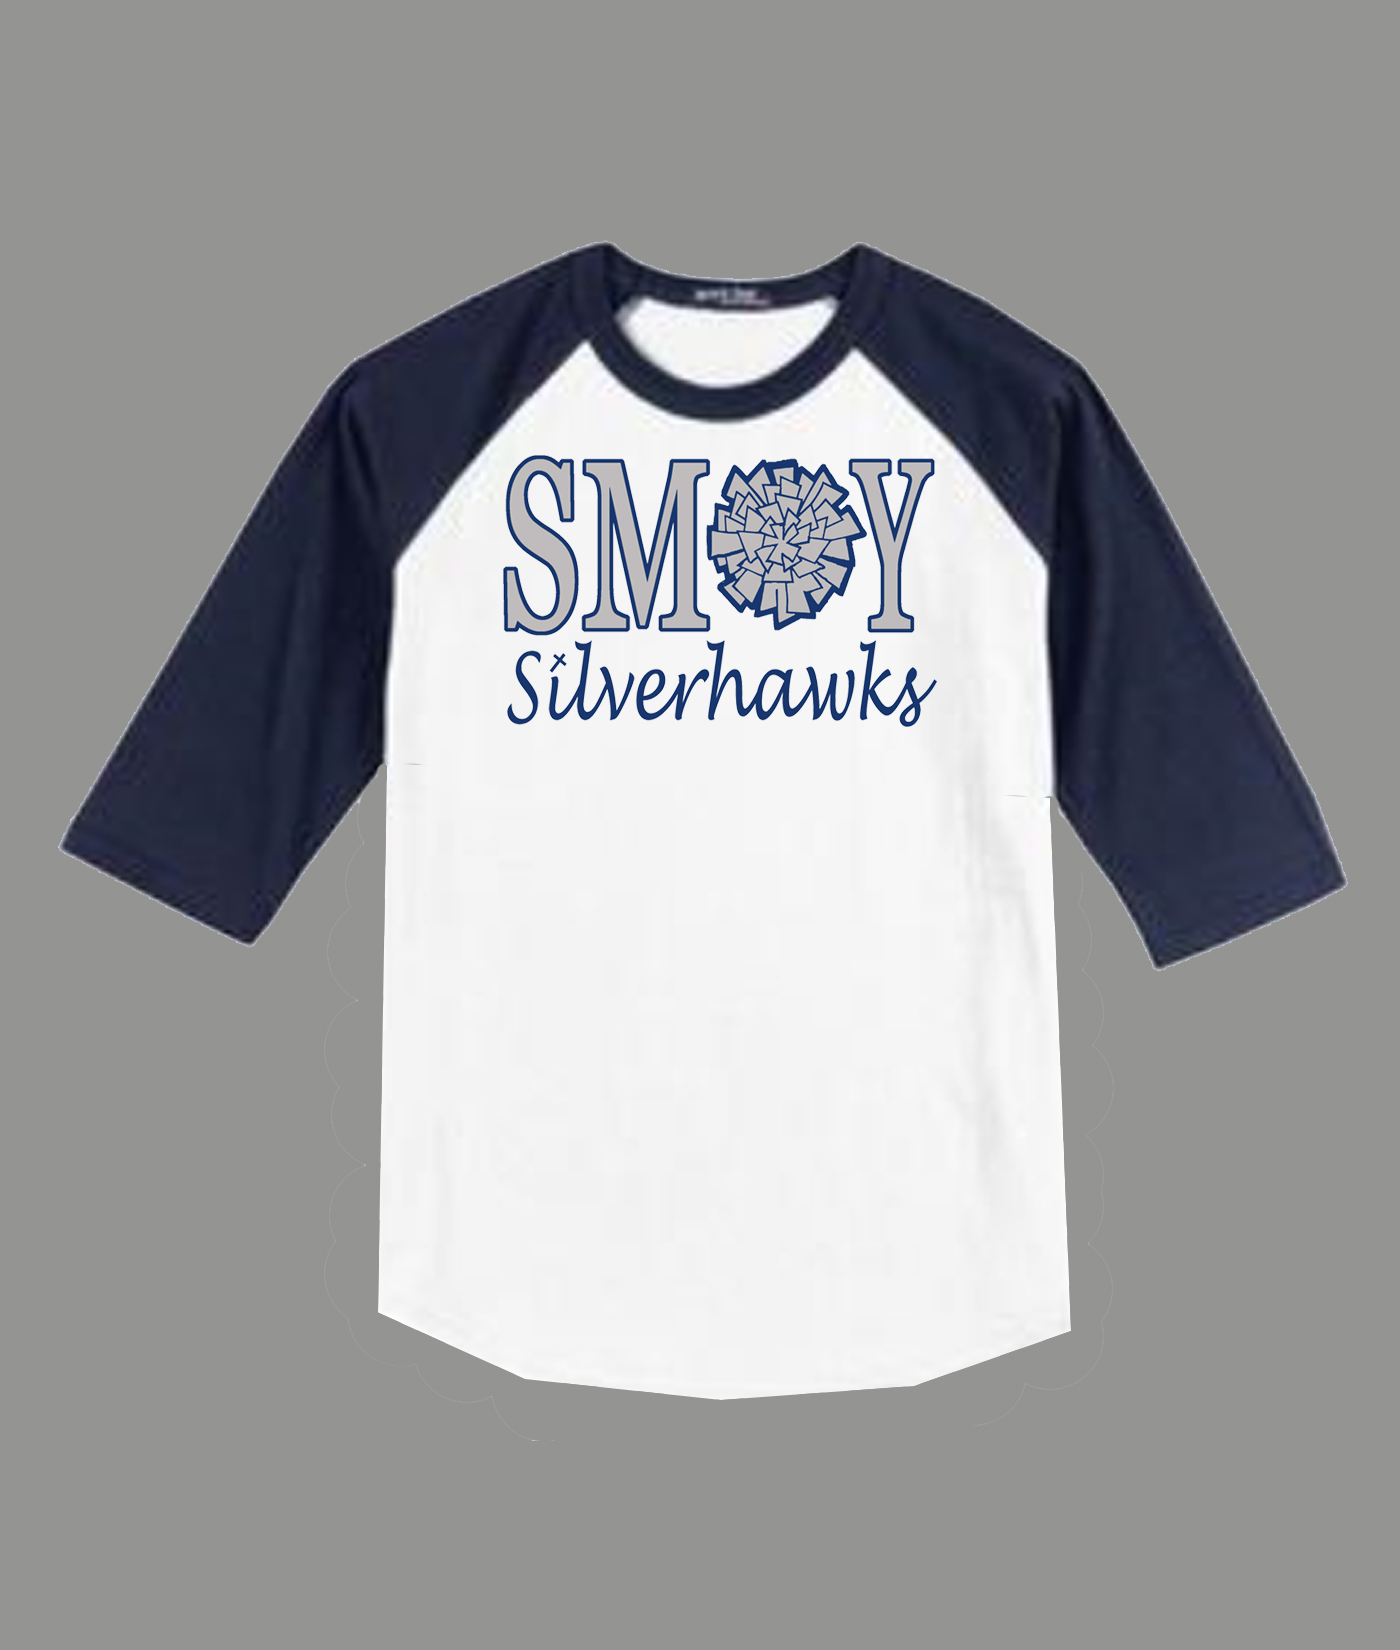 3/4 Sleeve Navy White T-shirt SMOY Cheer